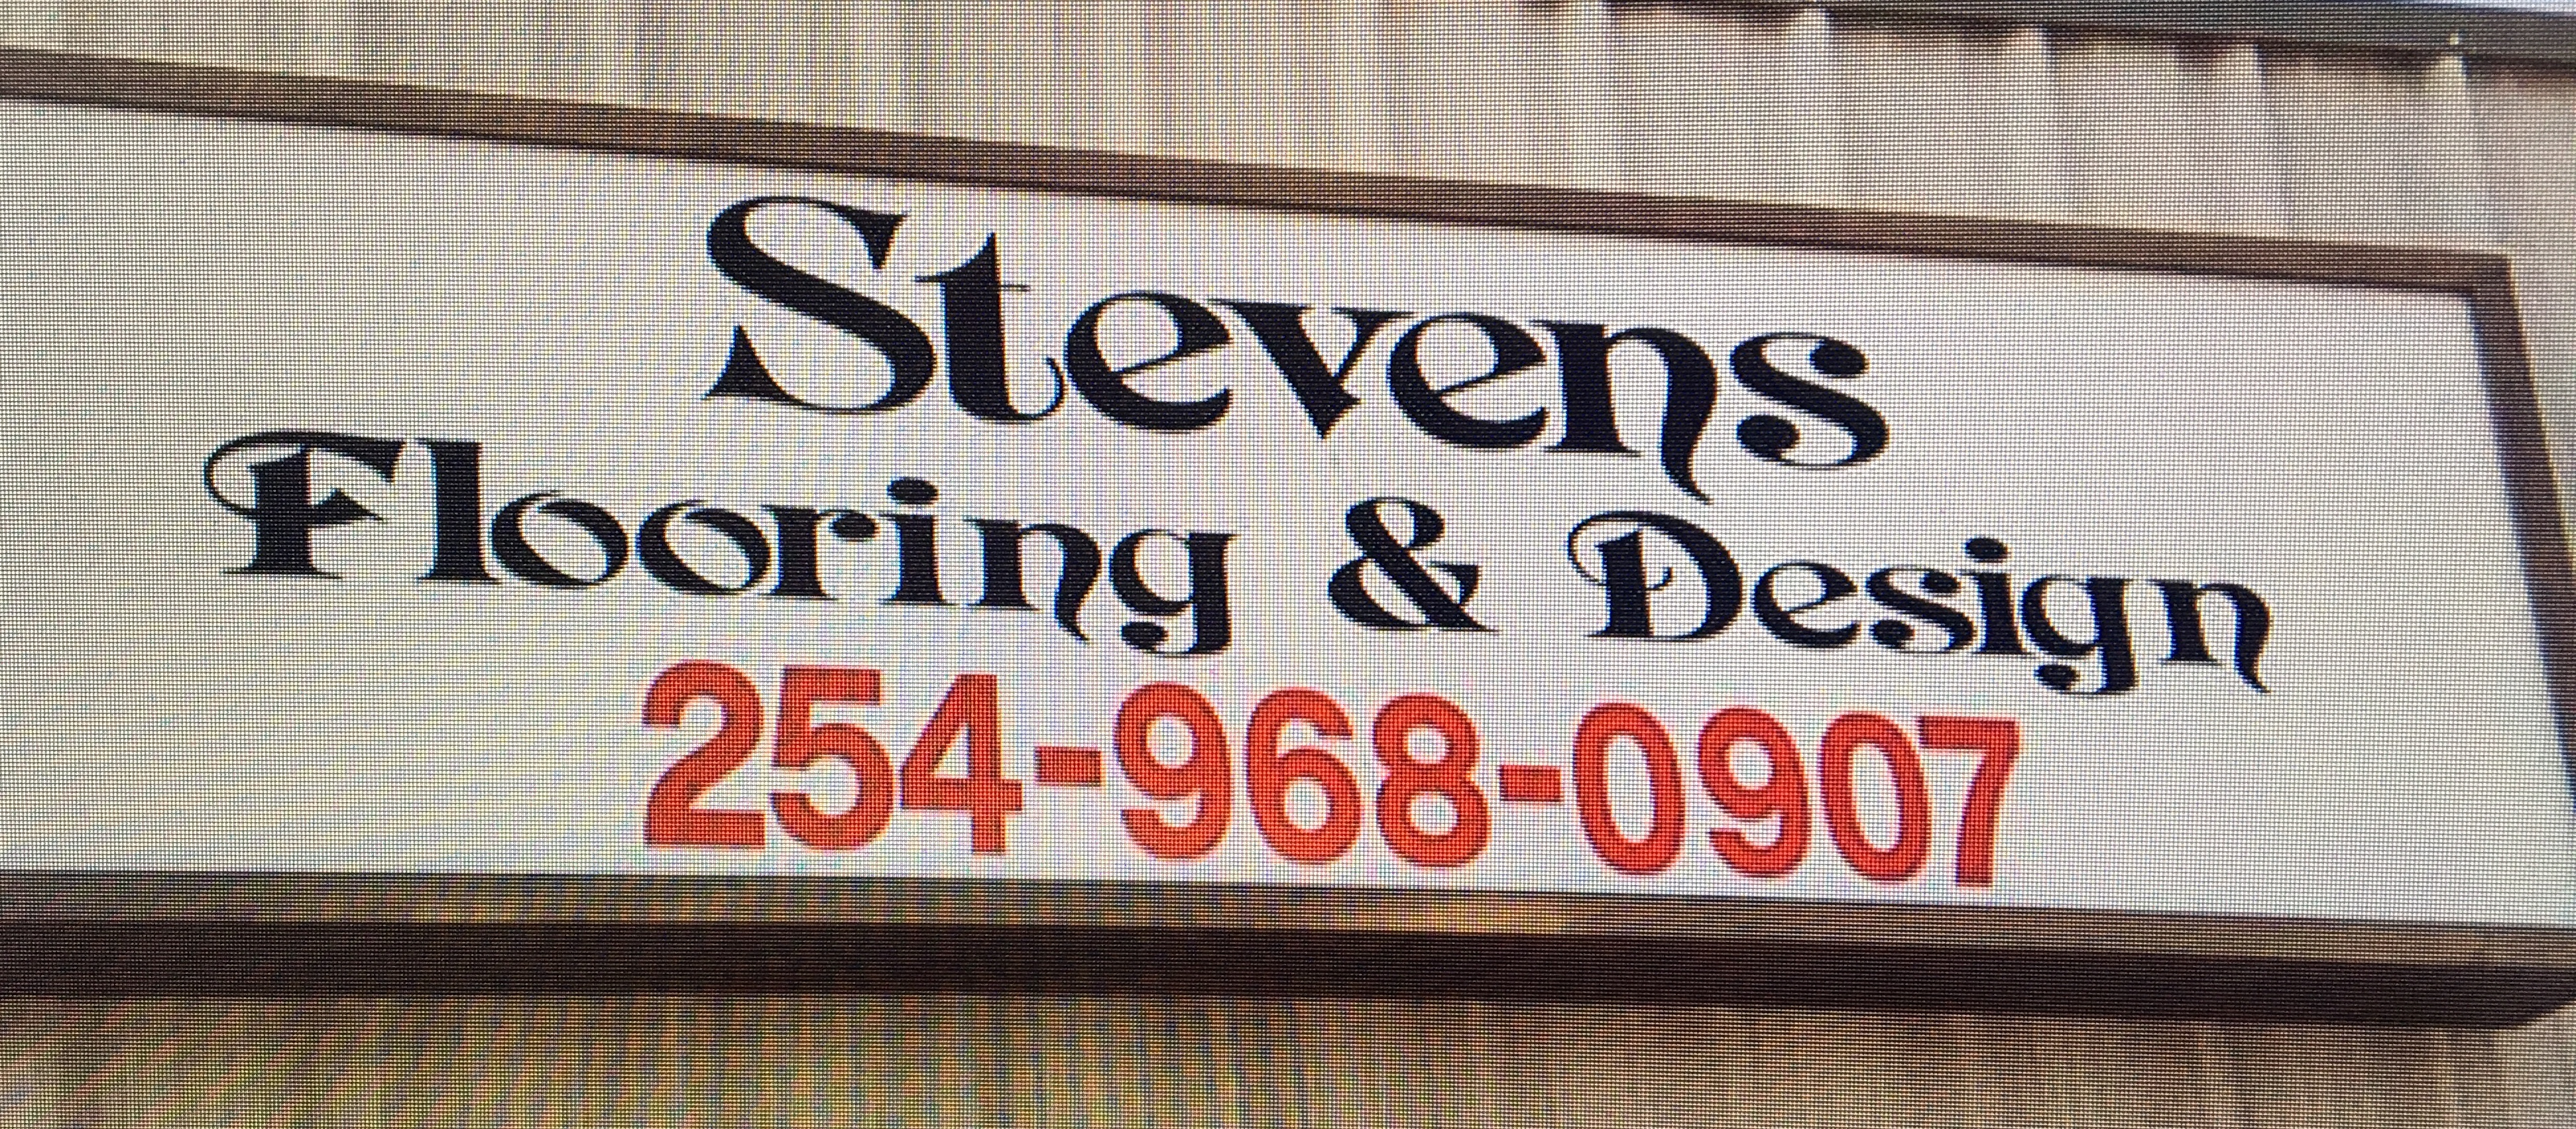 Stevens Flooring and Design